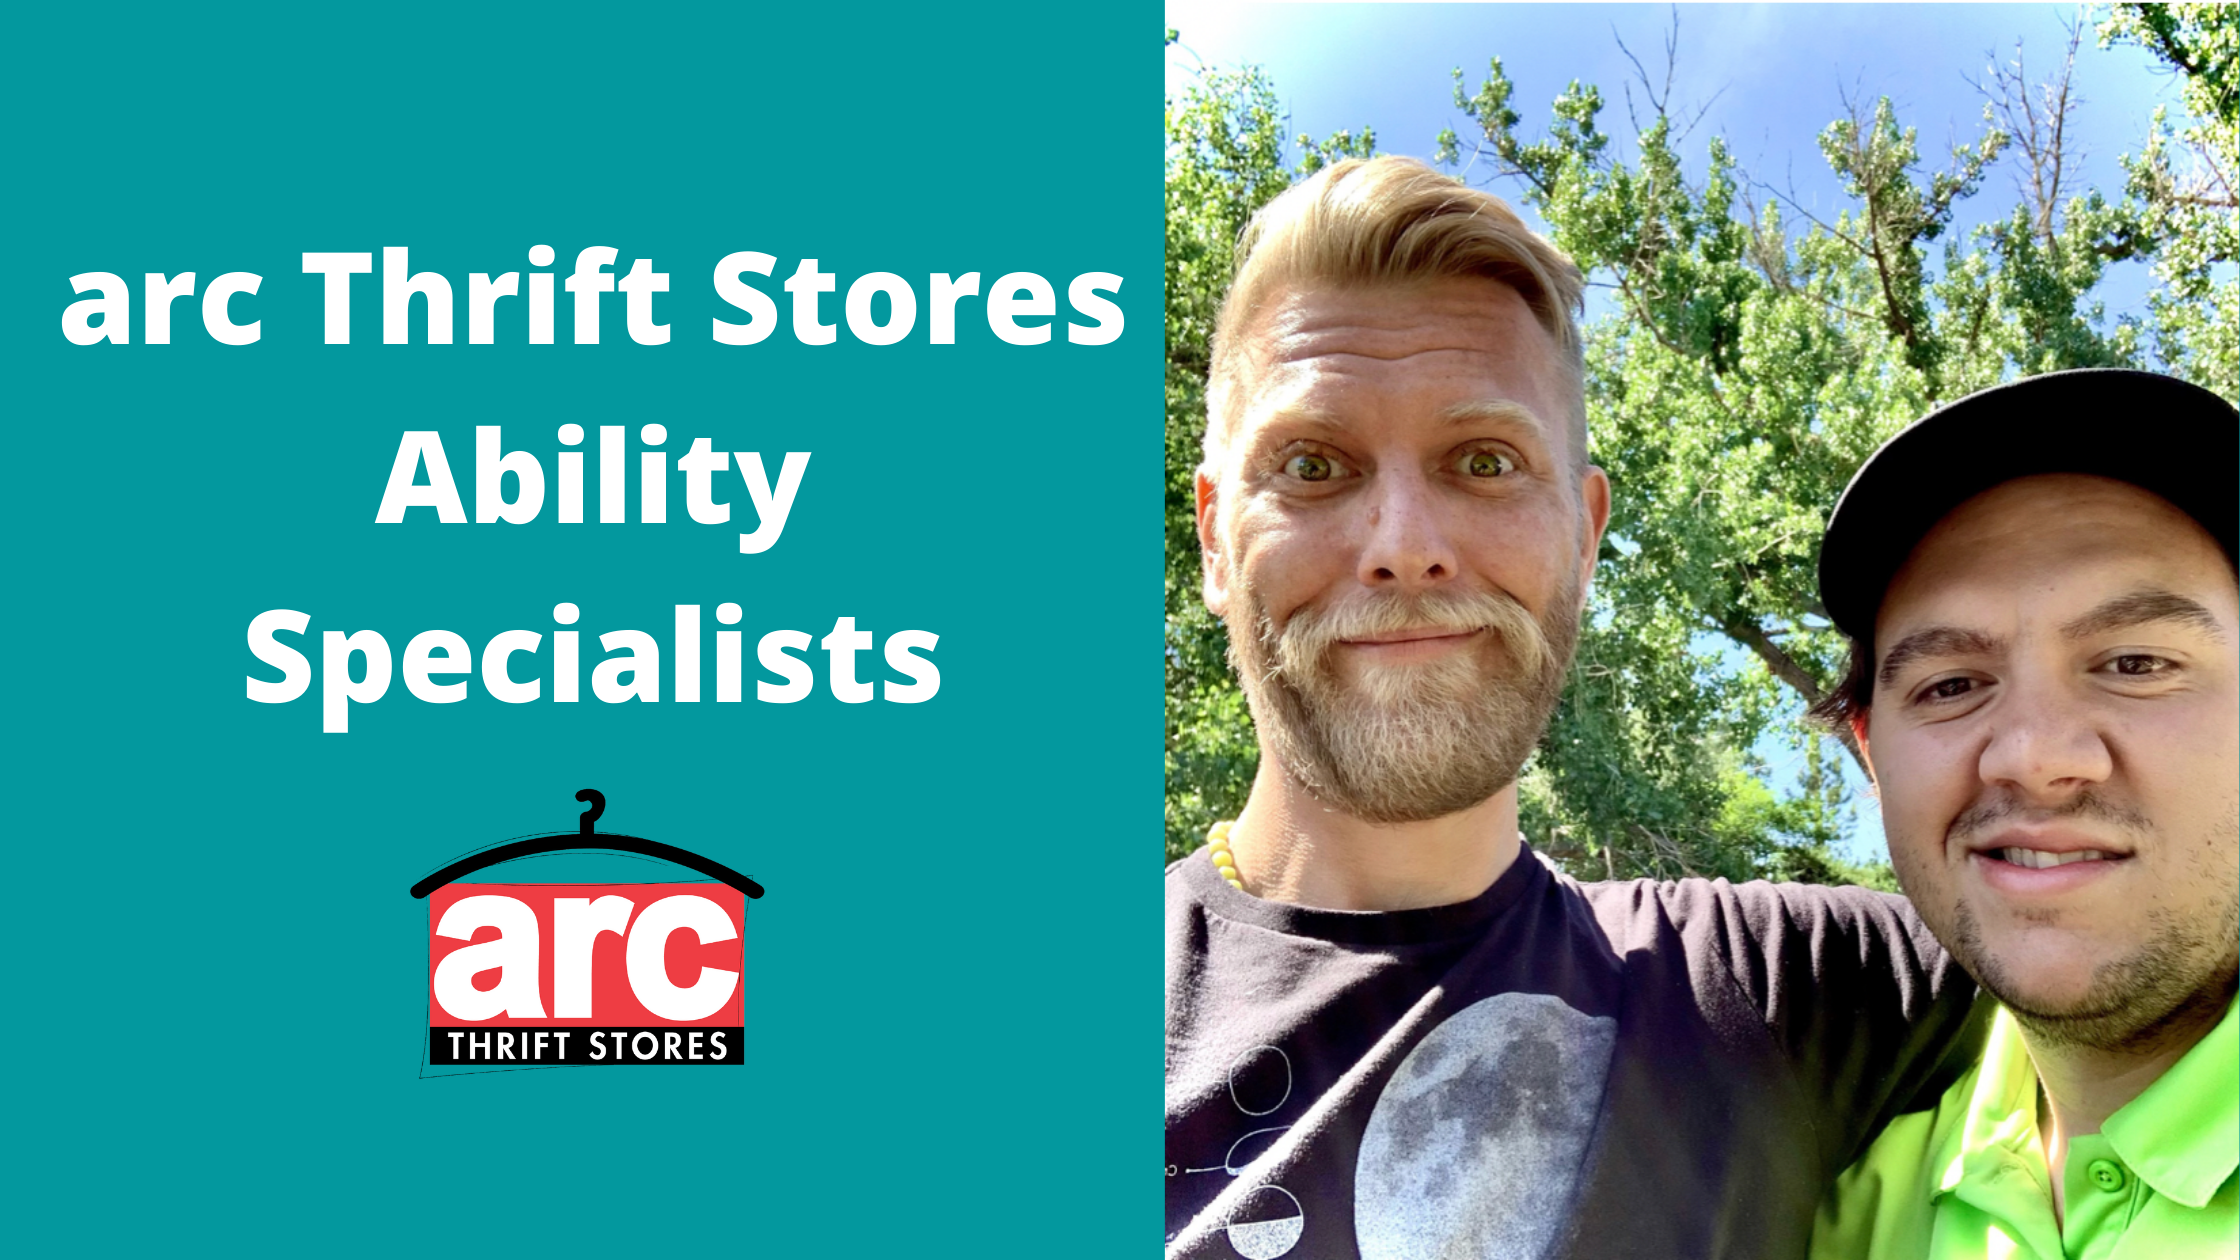 Arc Thrift Stores Ability Specialists